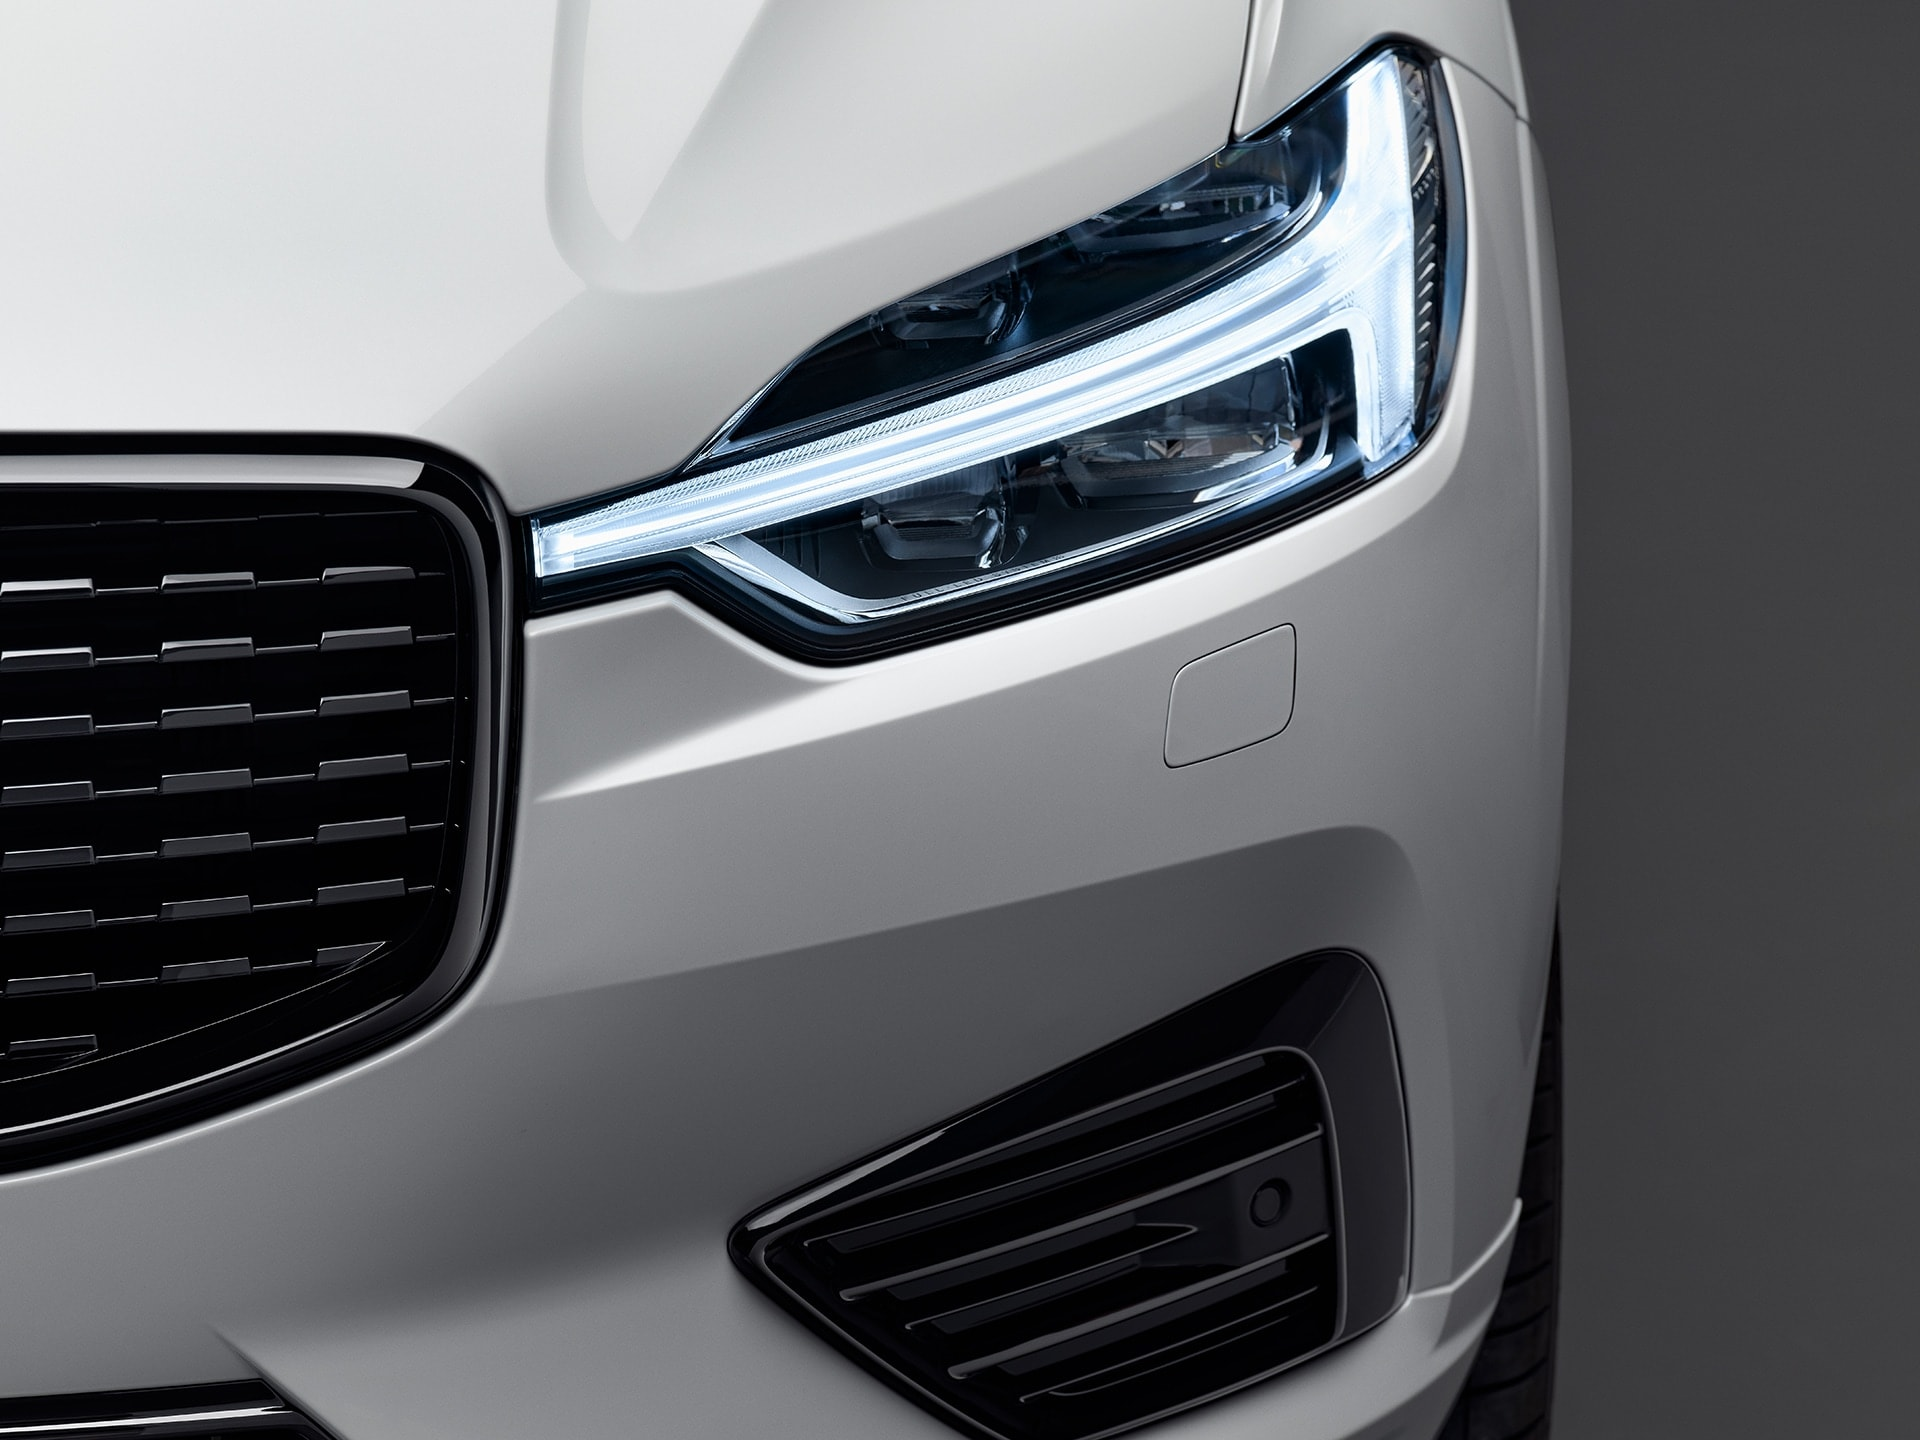 The front exterior of a white Volvo XC60